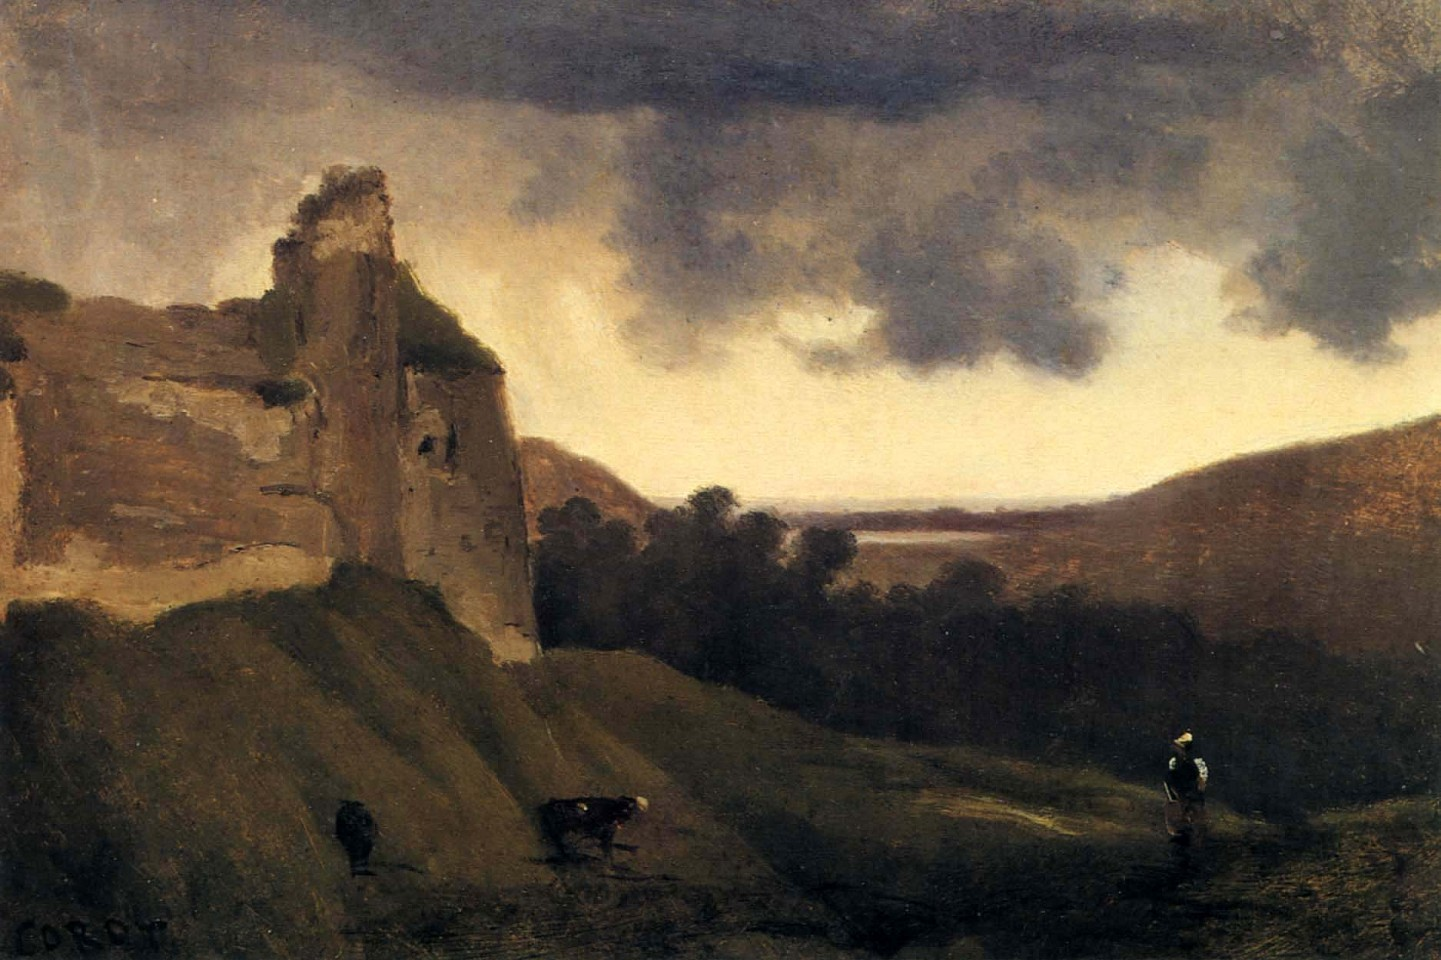 Jean Baptiste Camille Corot ,   Argues-Ruines du Chateau  ,  1828-30     Oil on canvas ,  8 1/4 x 12 1/4 in. (21 x 31.1 cm)     COR-005-PA